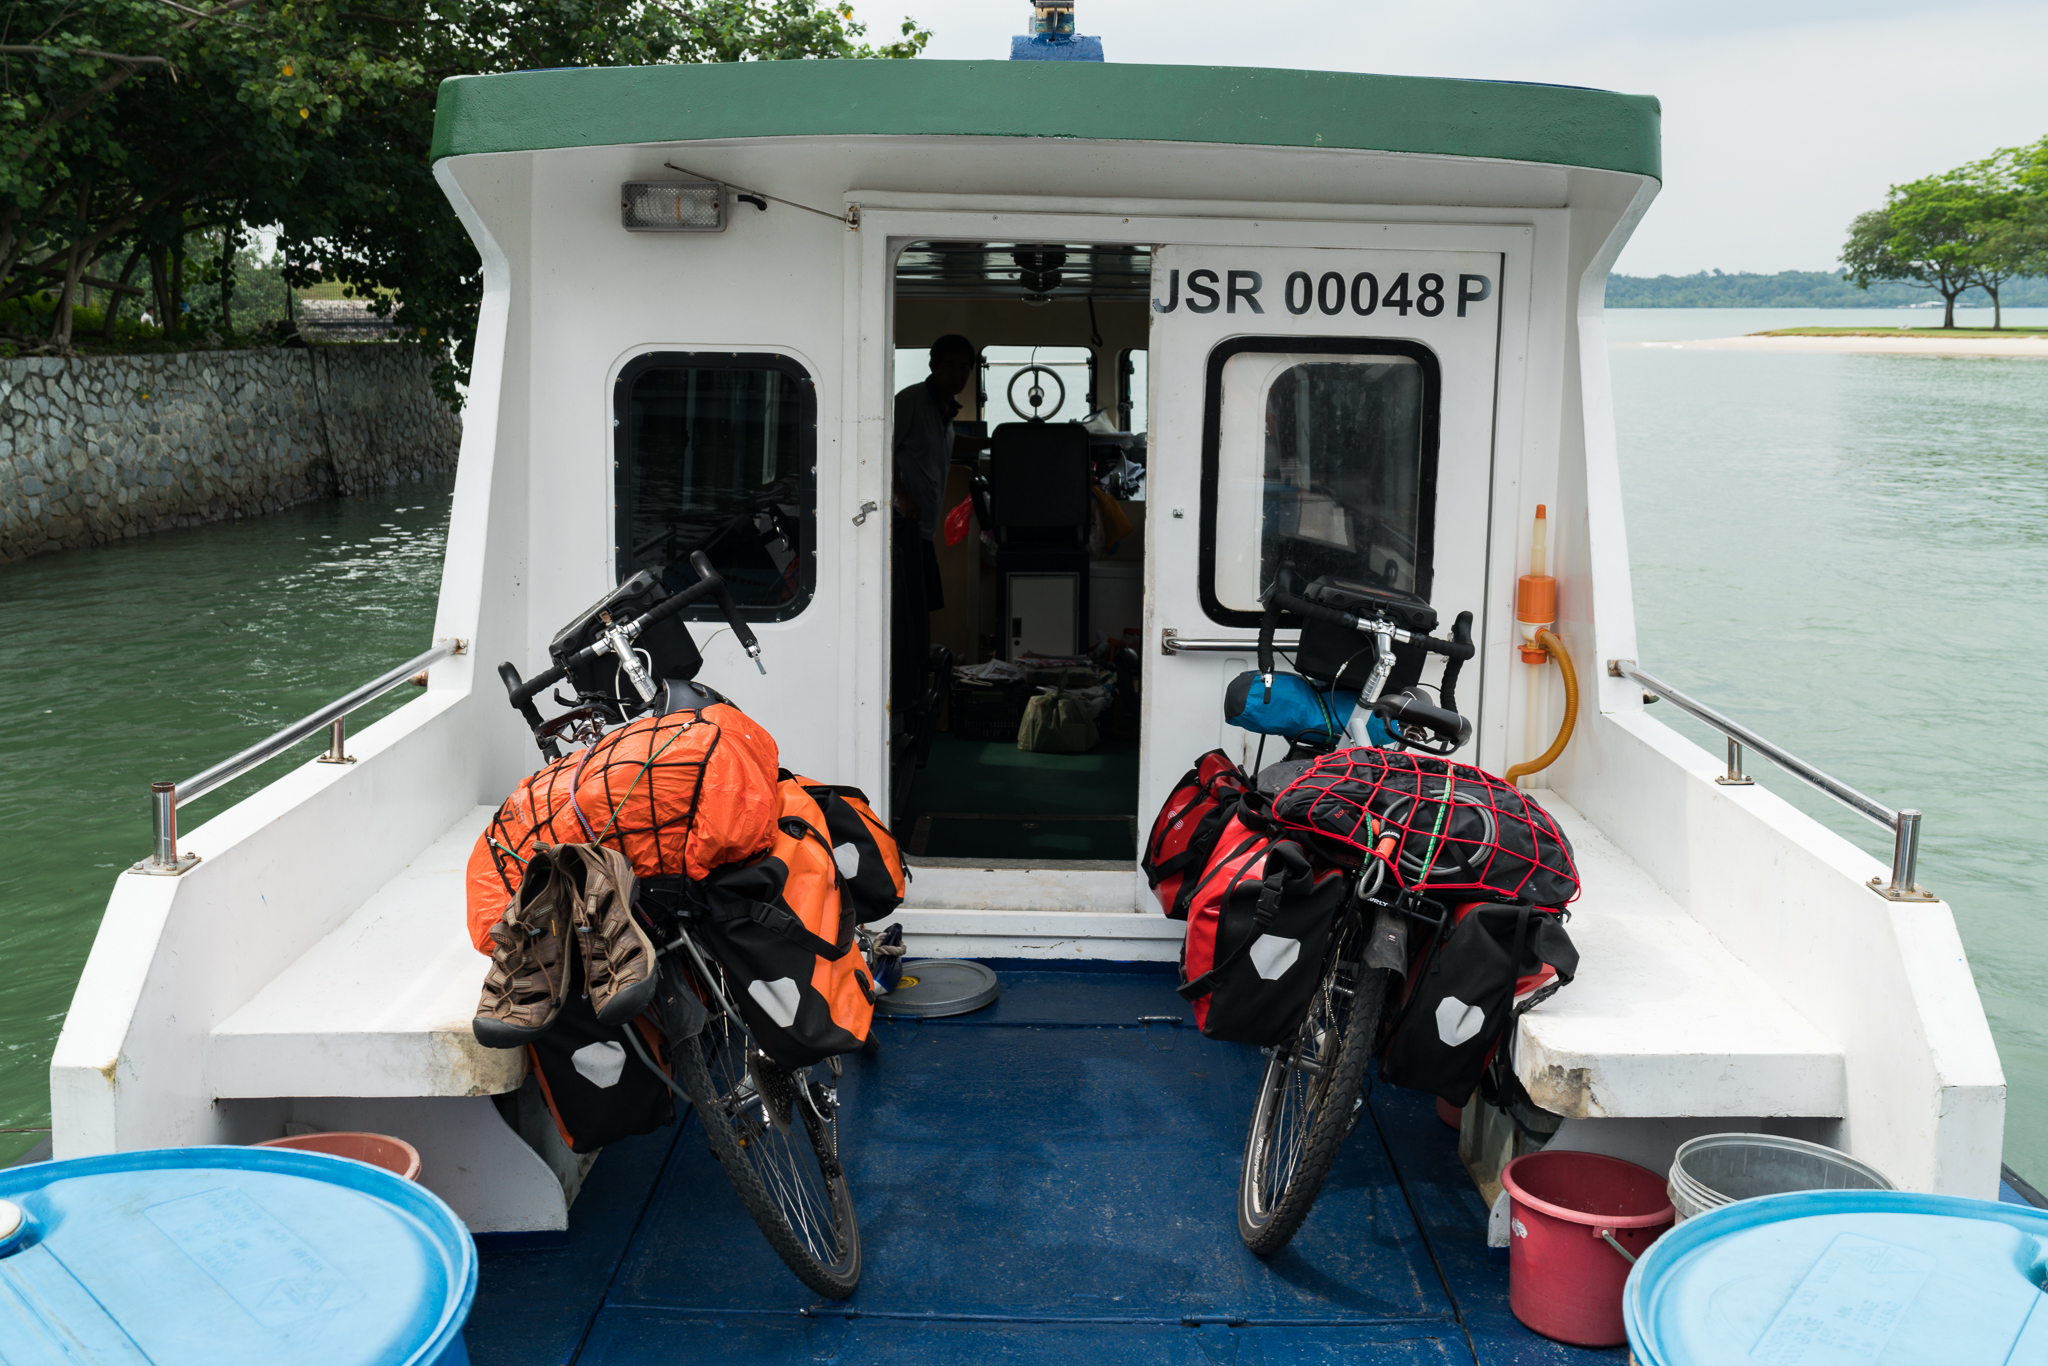 Bikes on the boat from Singapore to Malaysia!